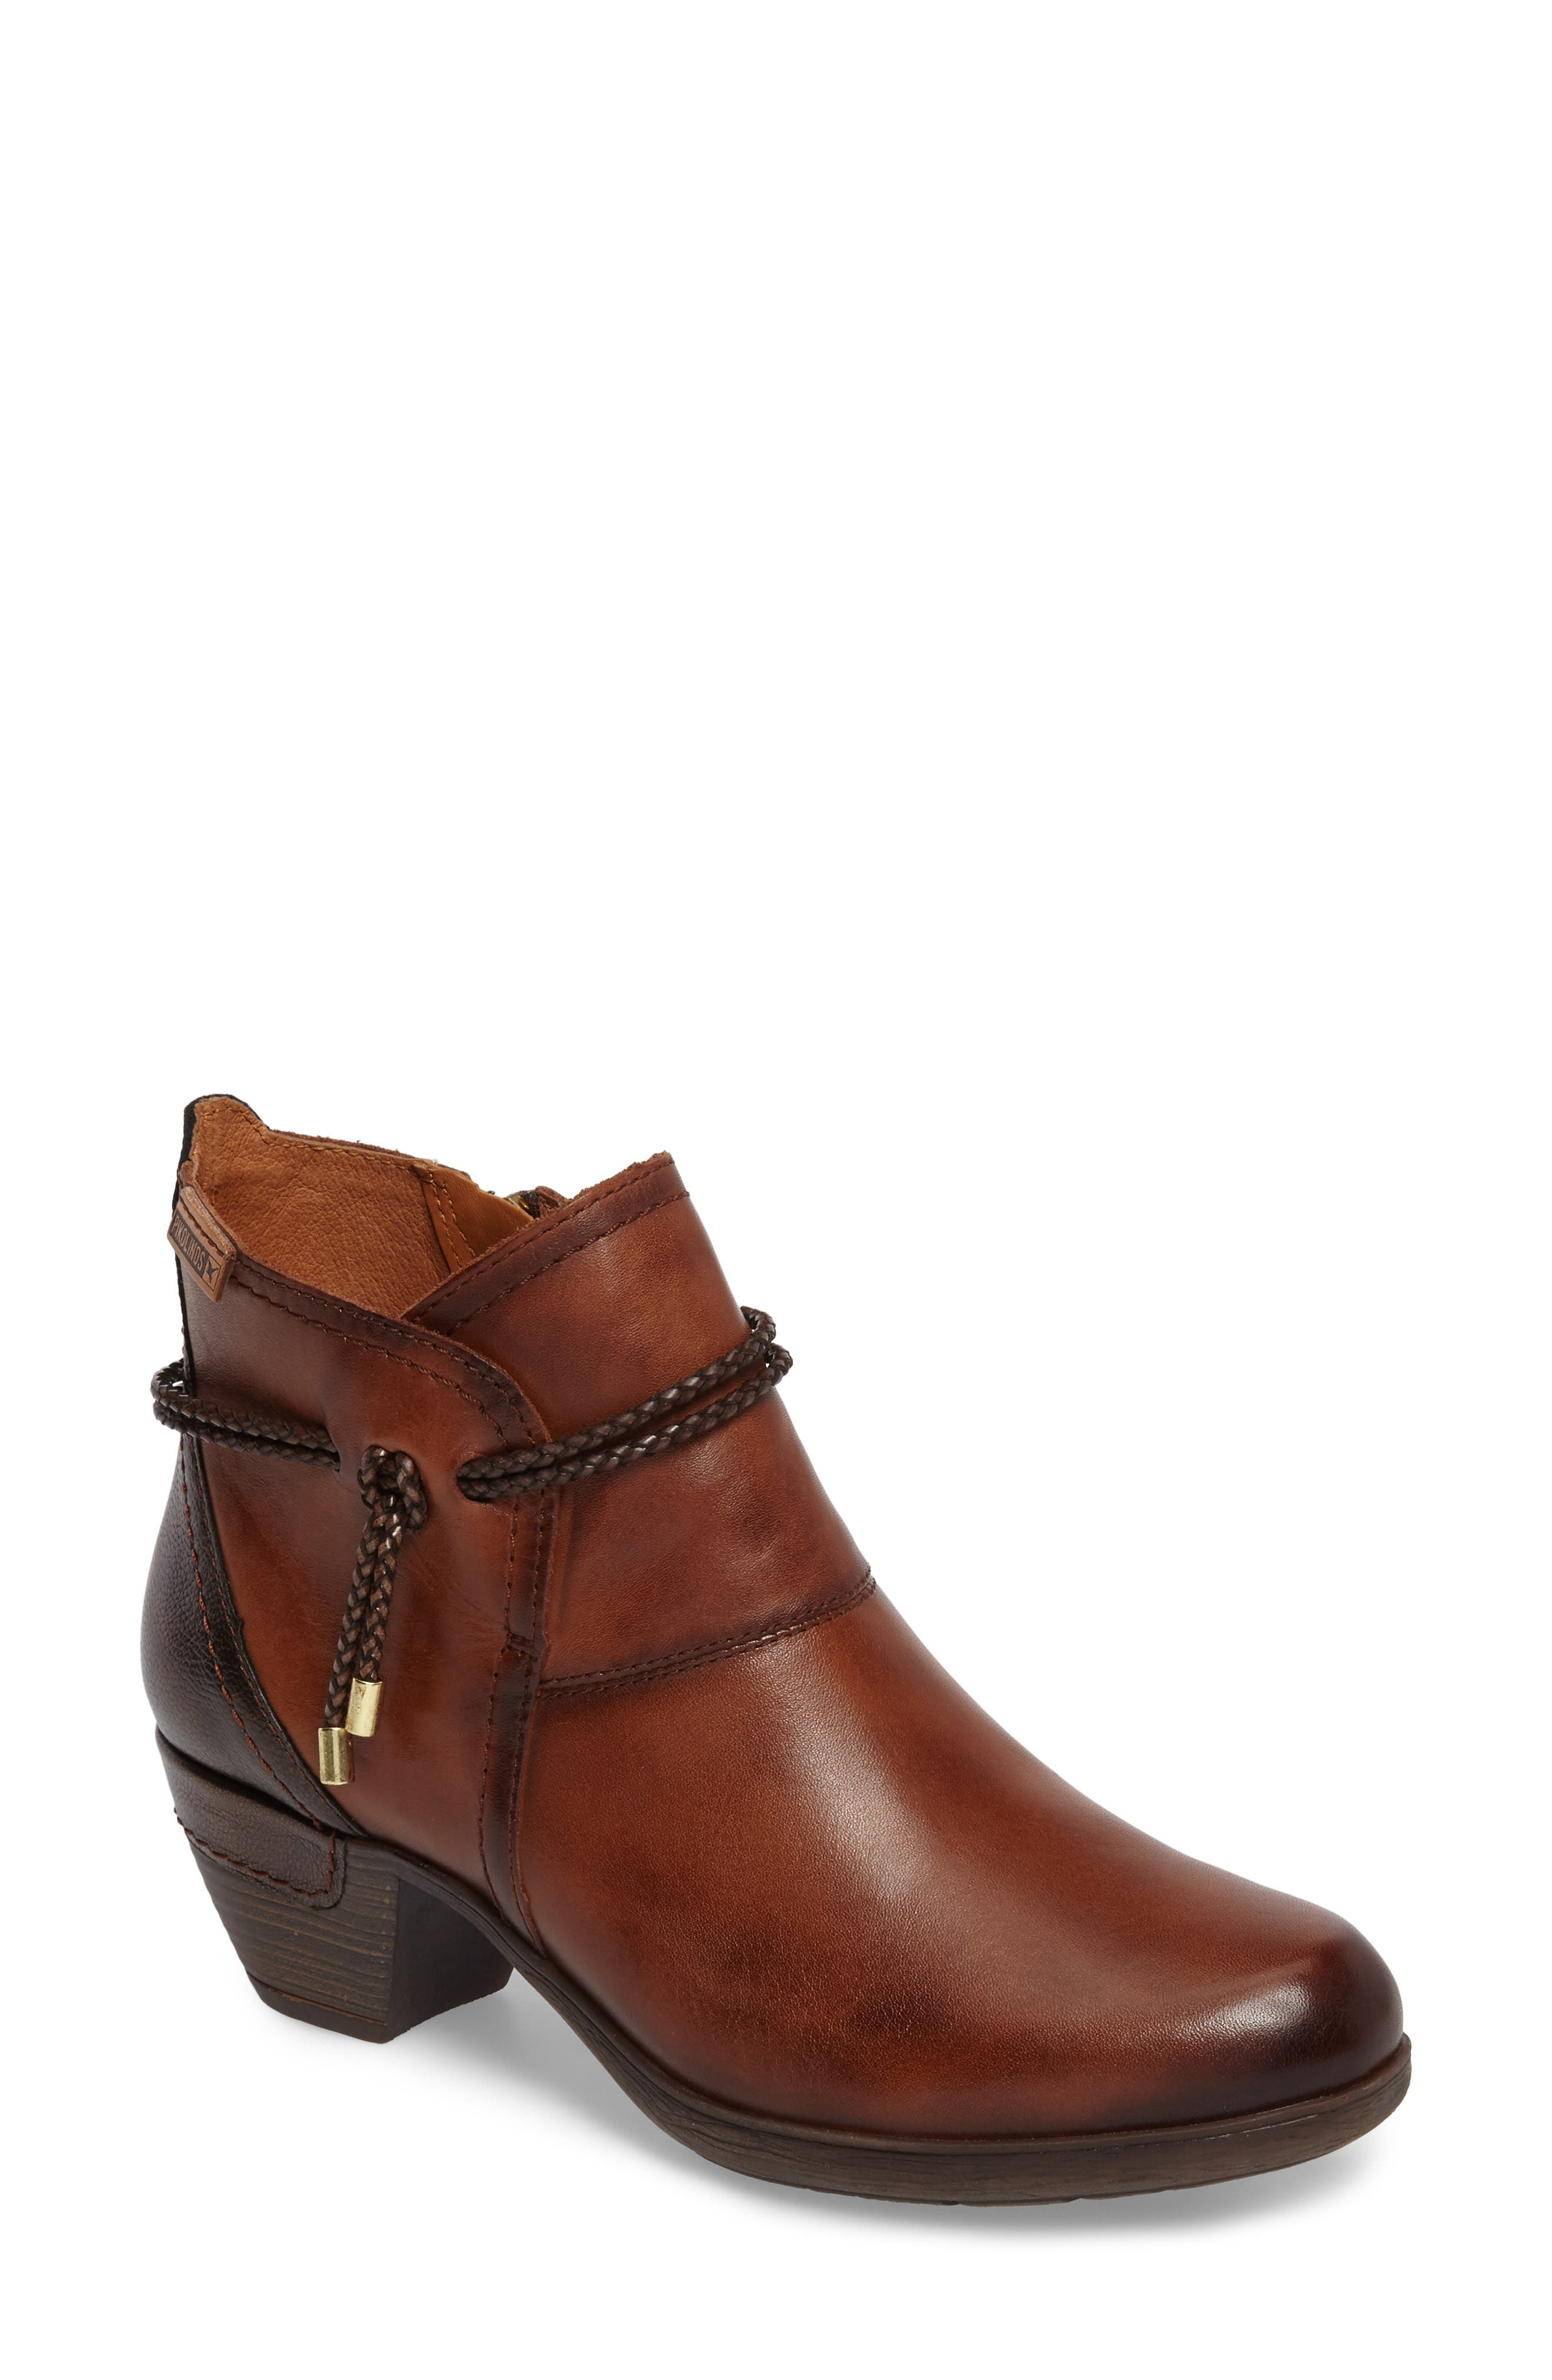 'Rotterdam' Braid Strap Bootie,                             Main thumbnail 1, color,                             CUERO BROWN OLMO LEATHER